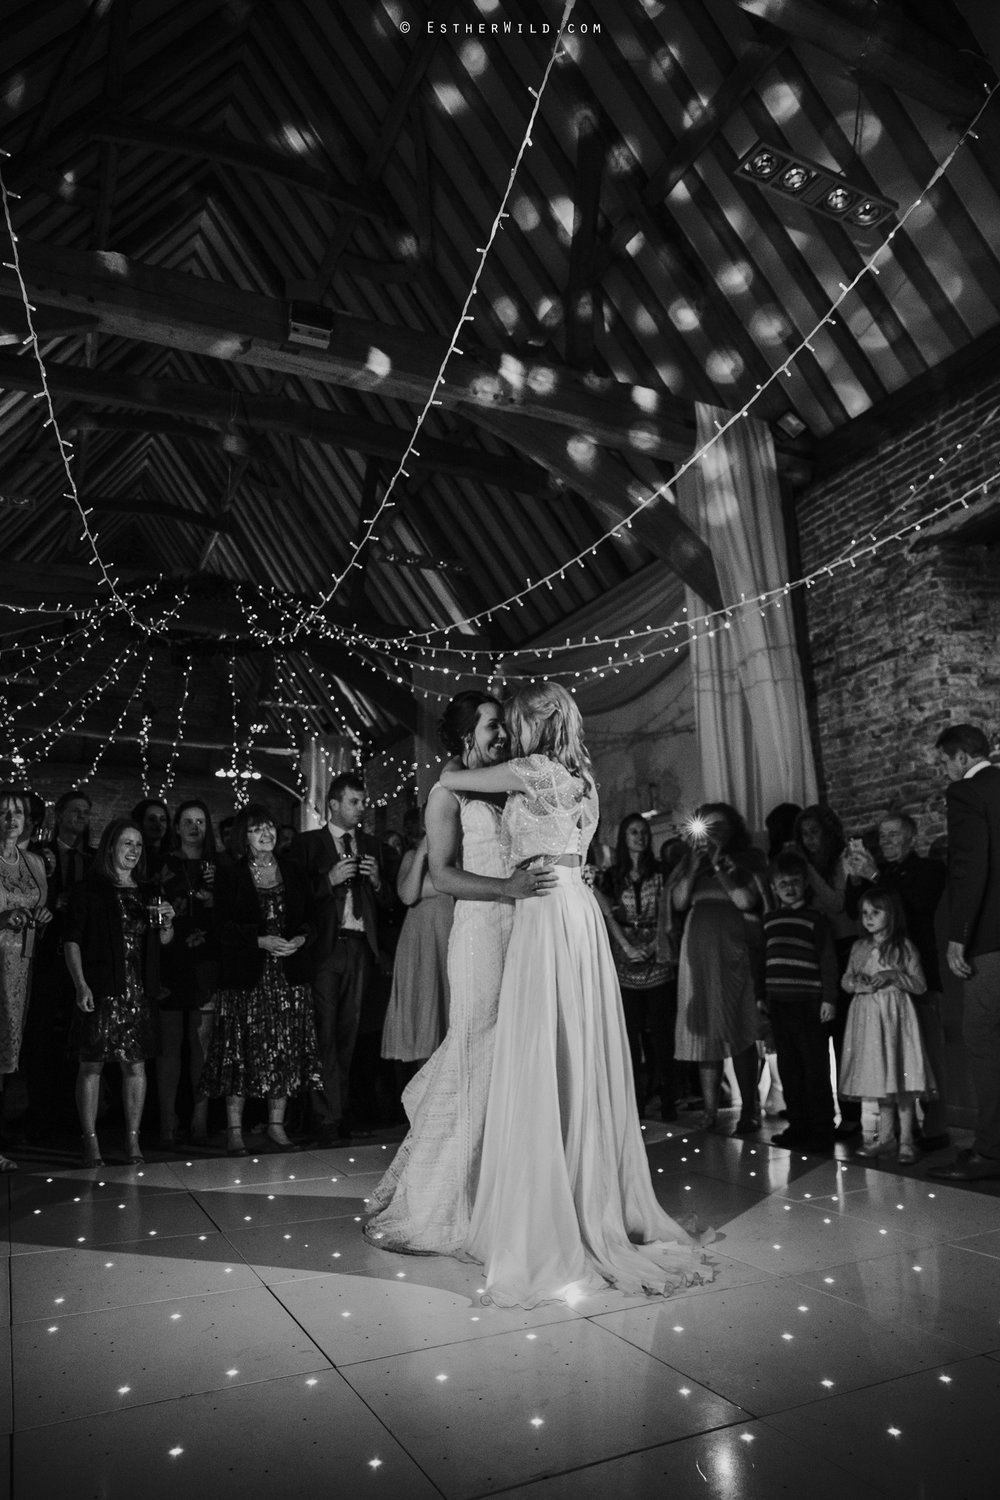 Elms_Barn_Weddings_Suffolk_Photographer_Copyright_Esther_Wild_IMG_3372-2.jpg